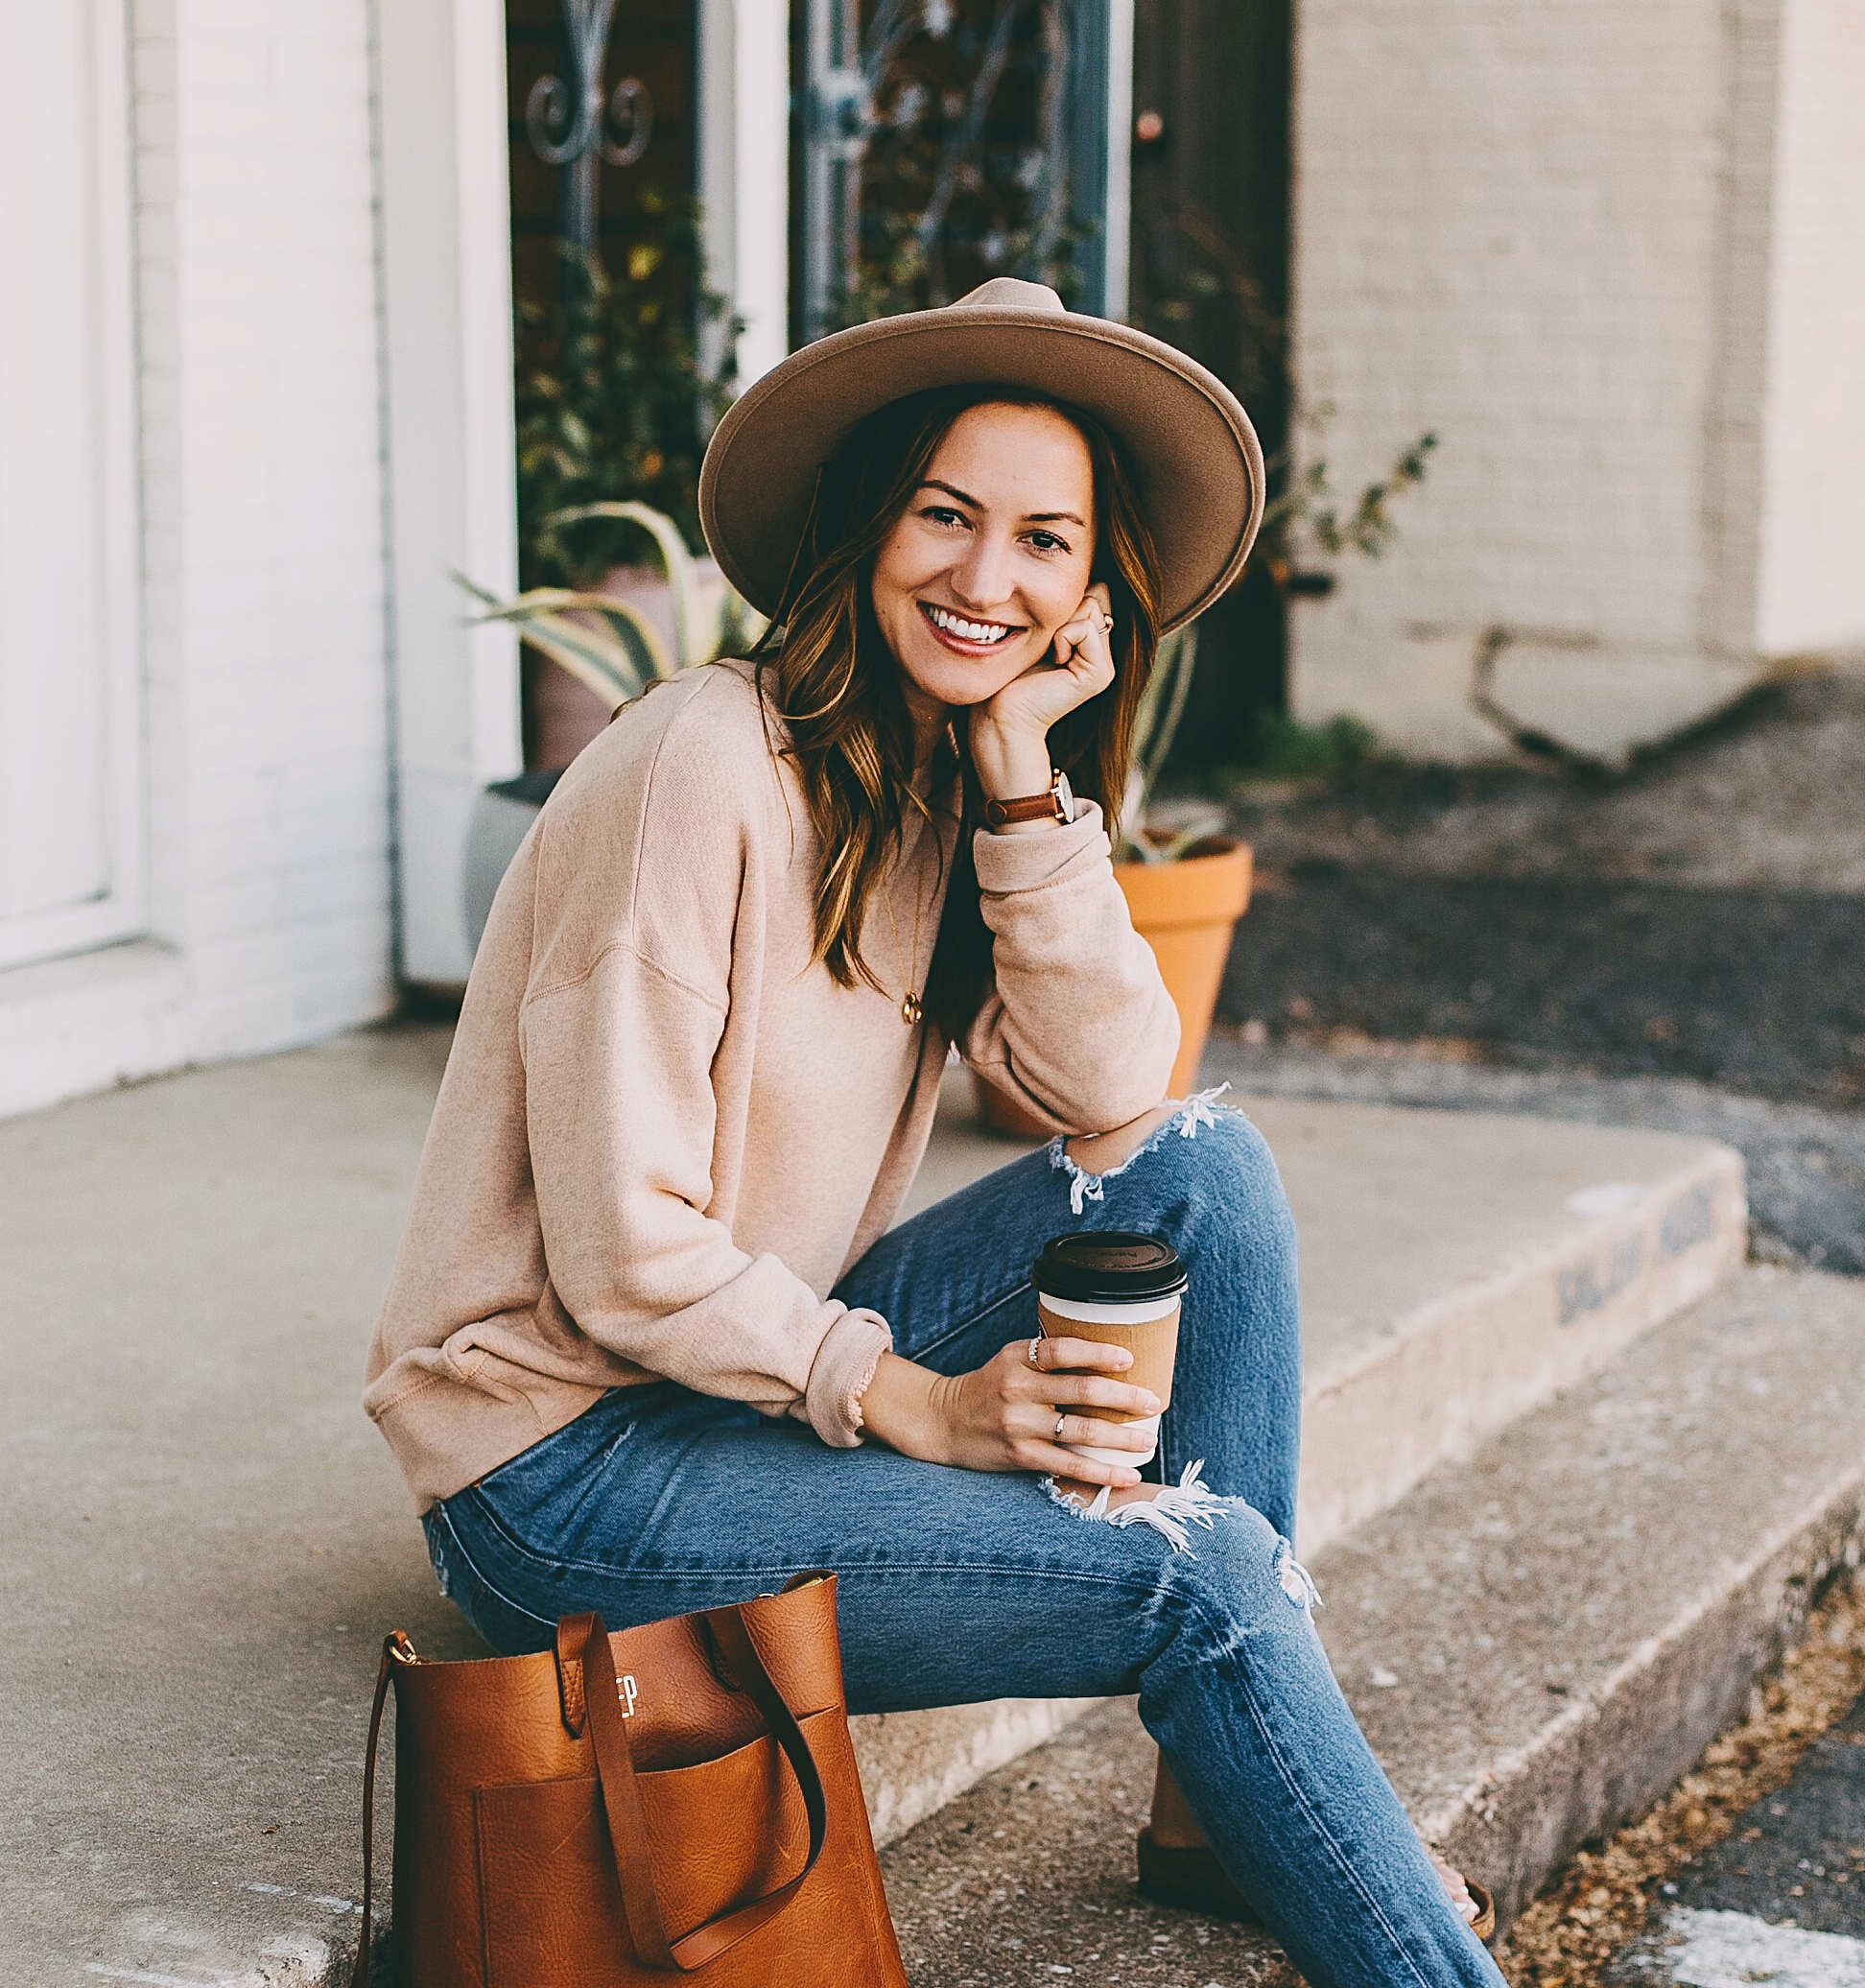 40% Off Nordstrom Fall Sale - My Picks Under $100! - LivvyLand | Austin Fashion and Style Blogger